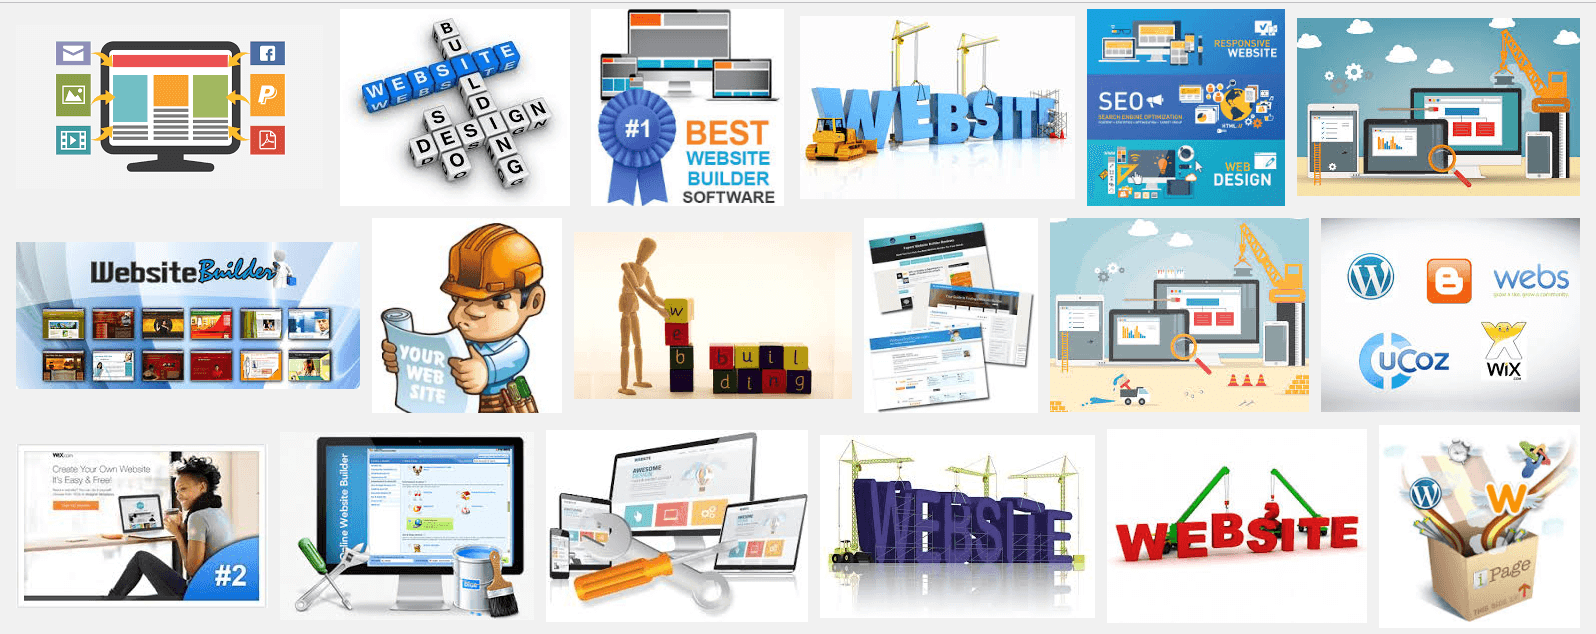 Competing with Wix Weebly Sitebuilder Squarespace etc etc